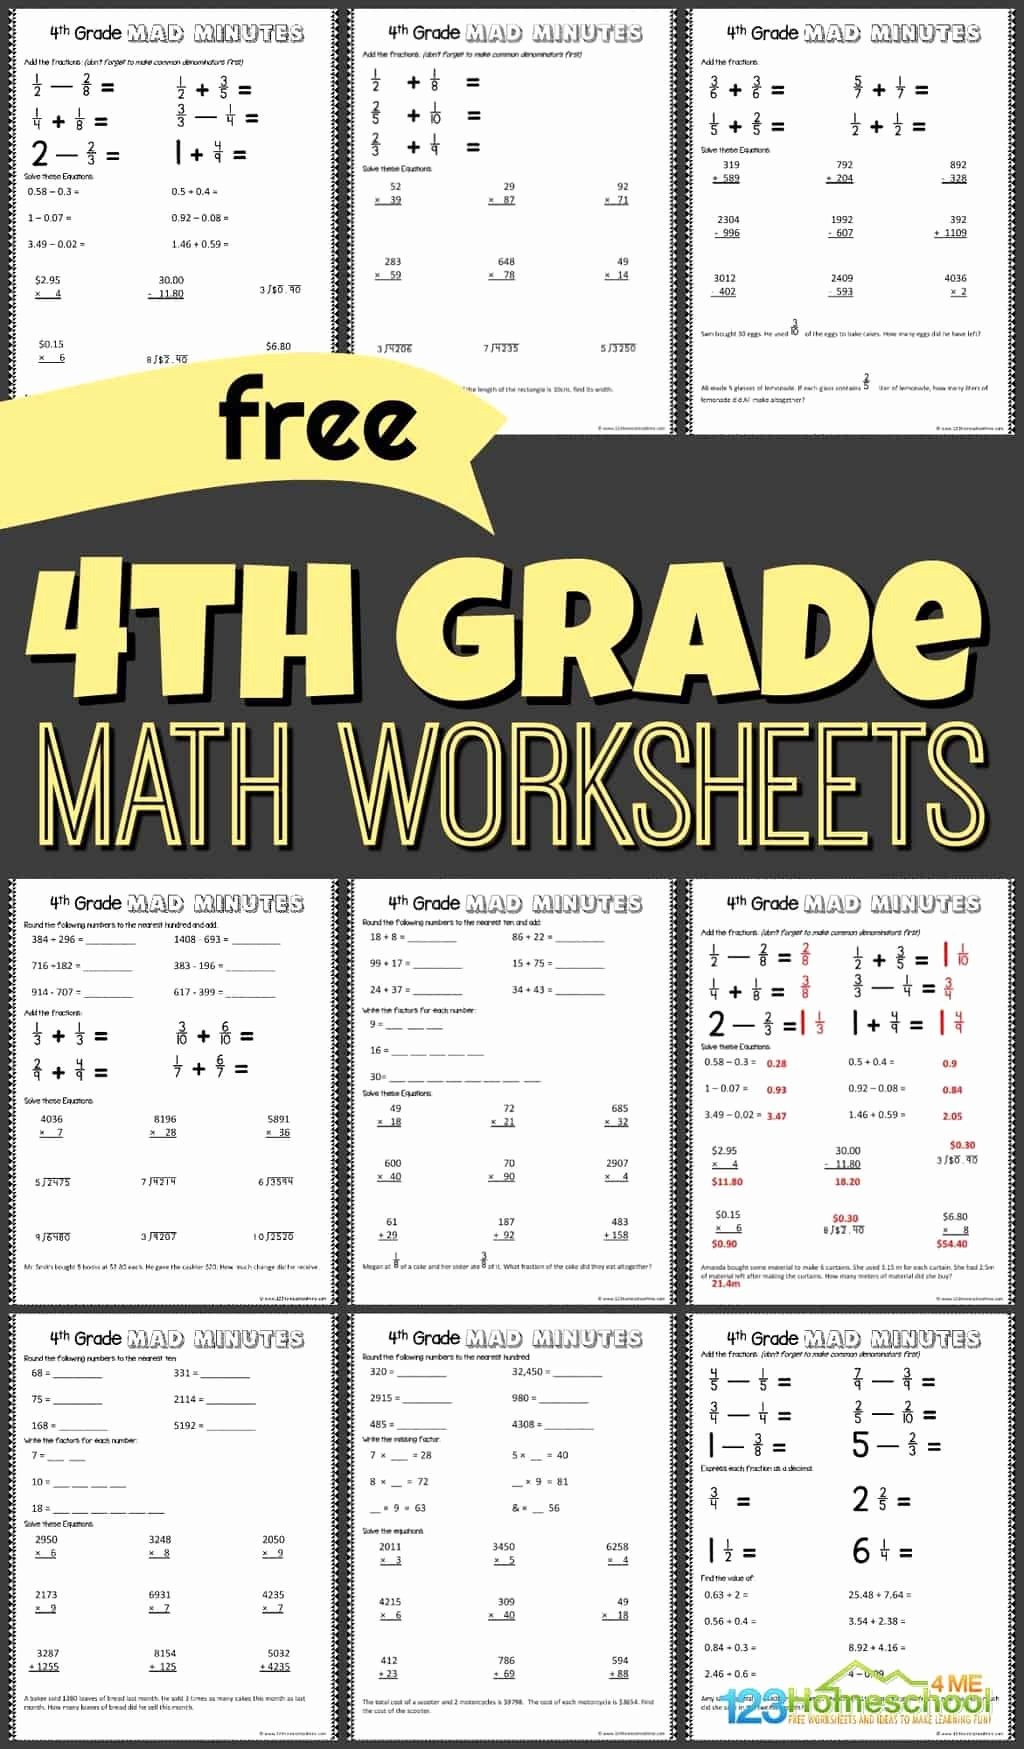 Free Printable Multiplication Worksheets for 4th Grade top Free 4th Grade Math Worksheets